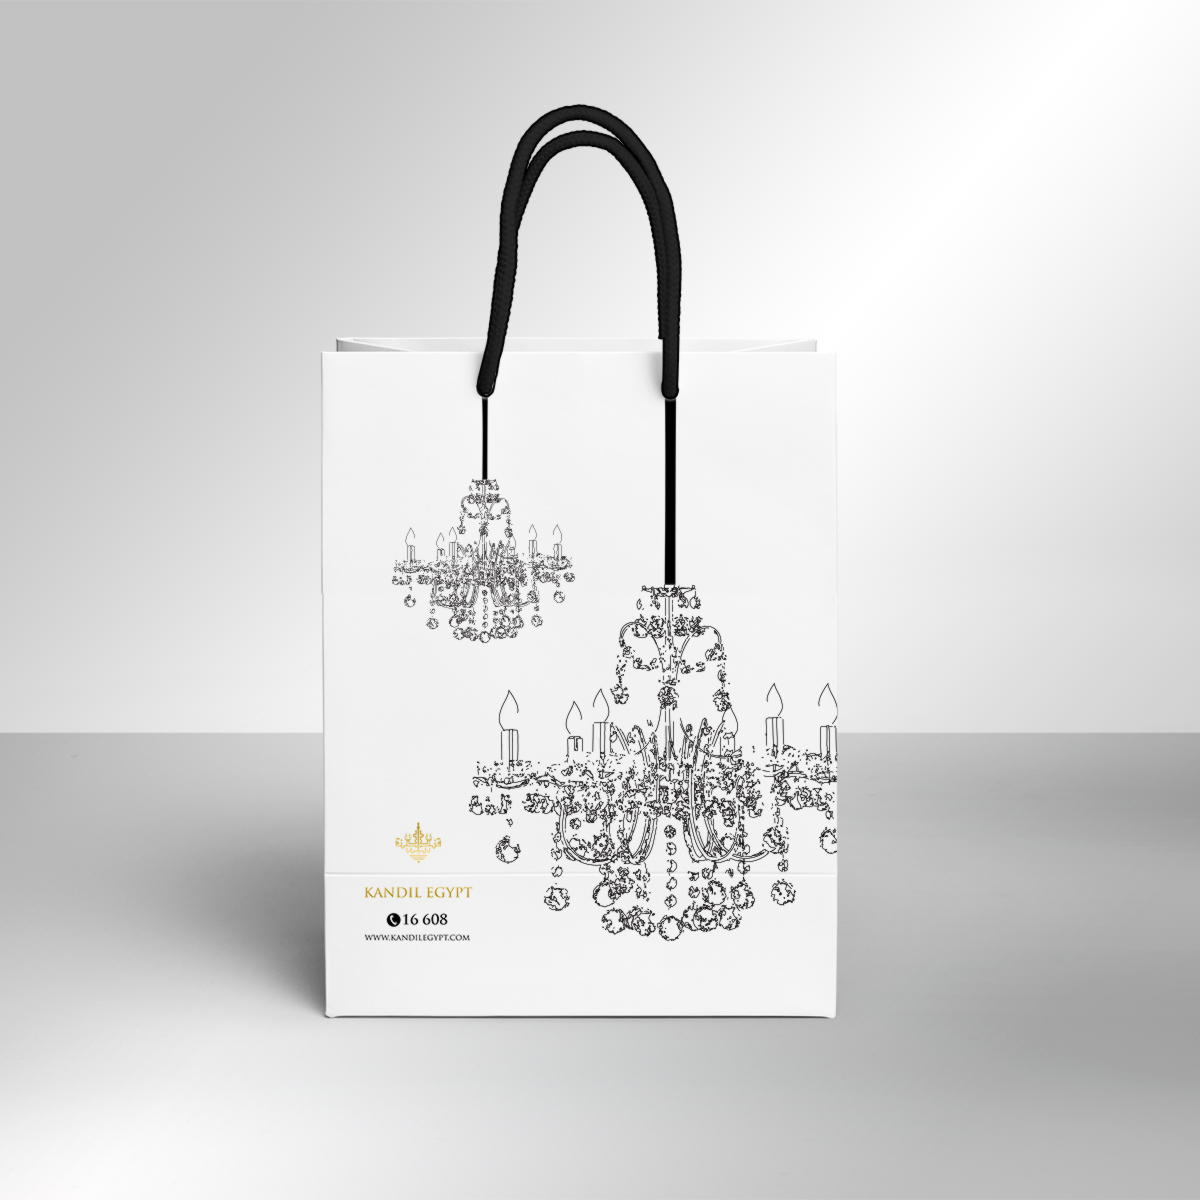 Kandil Shopping Bag